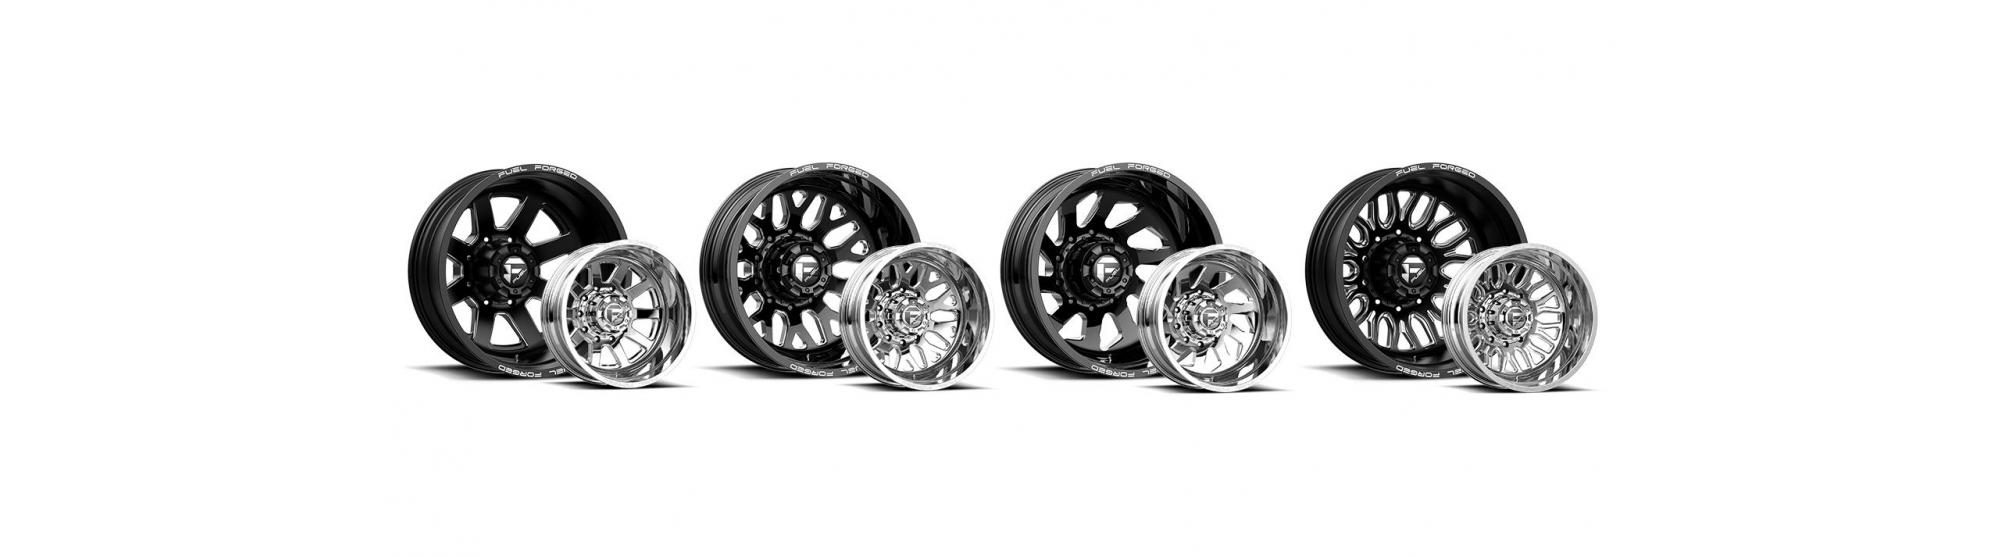 Select Fuel Forged Dually Wheels Now In Stock